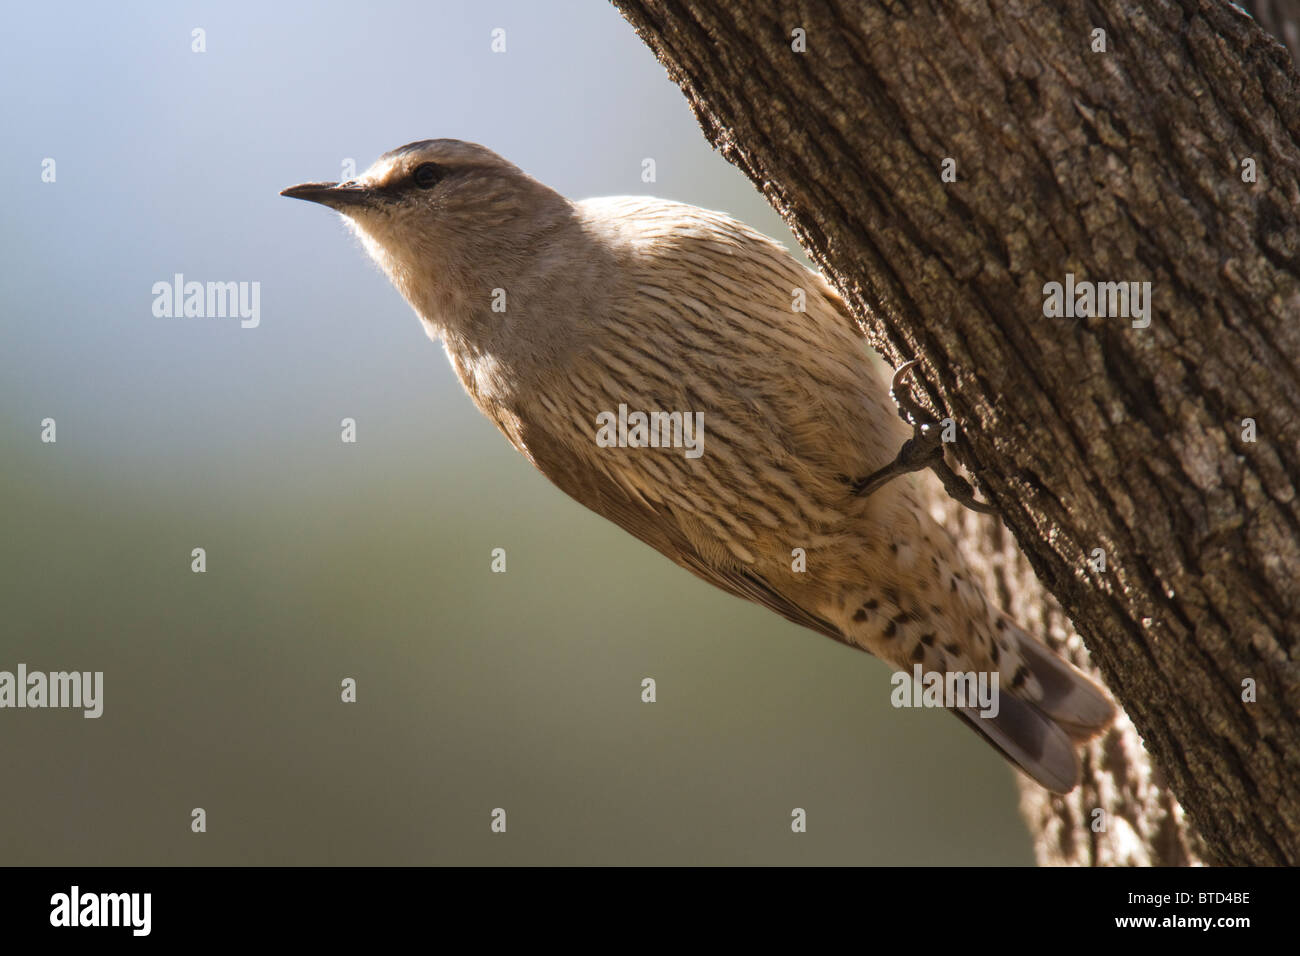 Brown Treecreeper (Climacteris picumnus) clinging to tree trunk - Stock Image